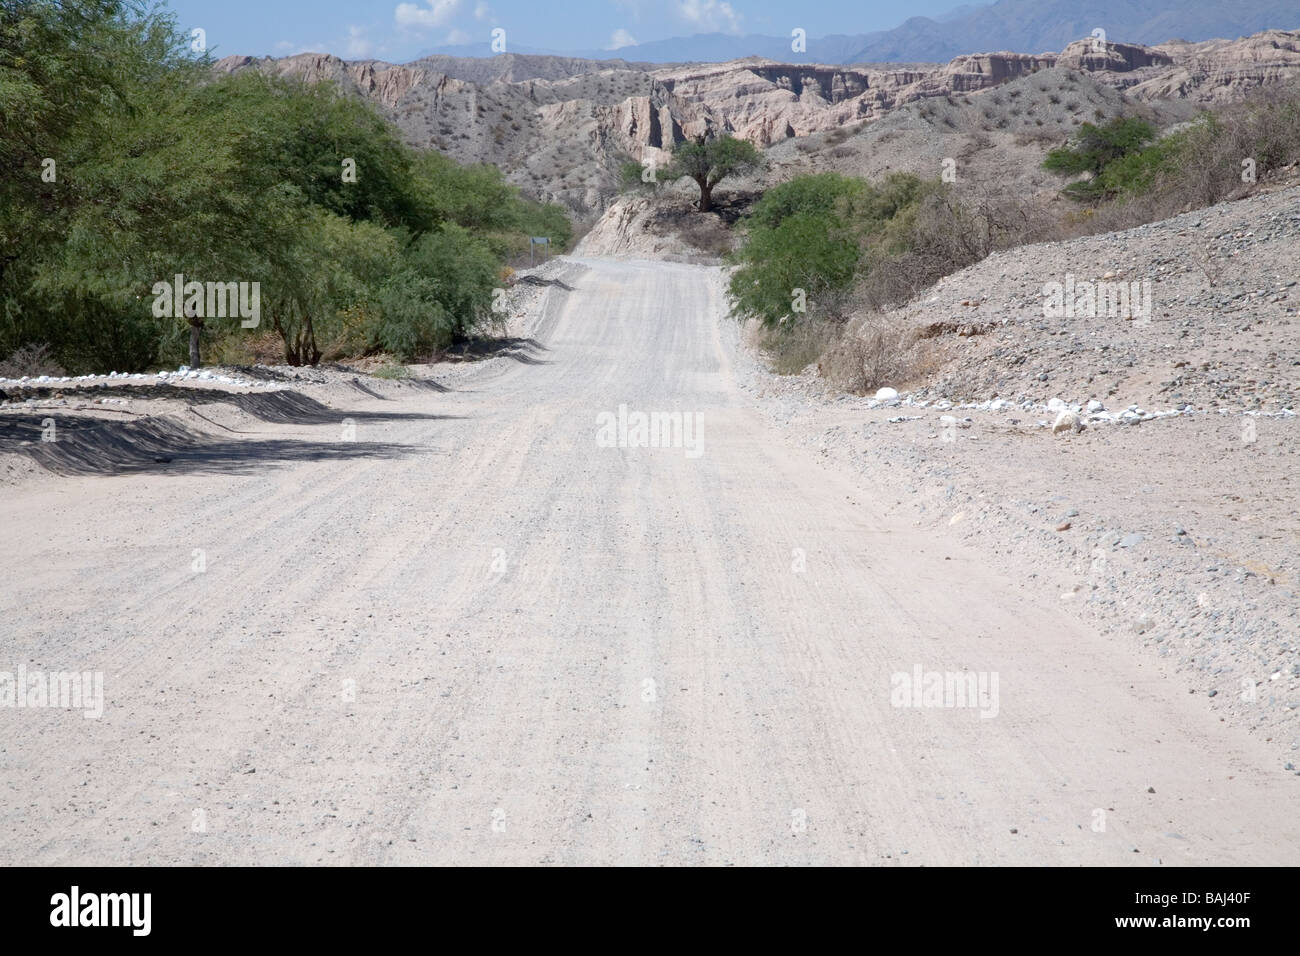 Route 40 stretches into the distance, heading towards Molinos, Salta Province, Argentina - Stock Image